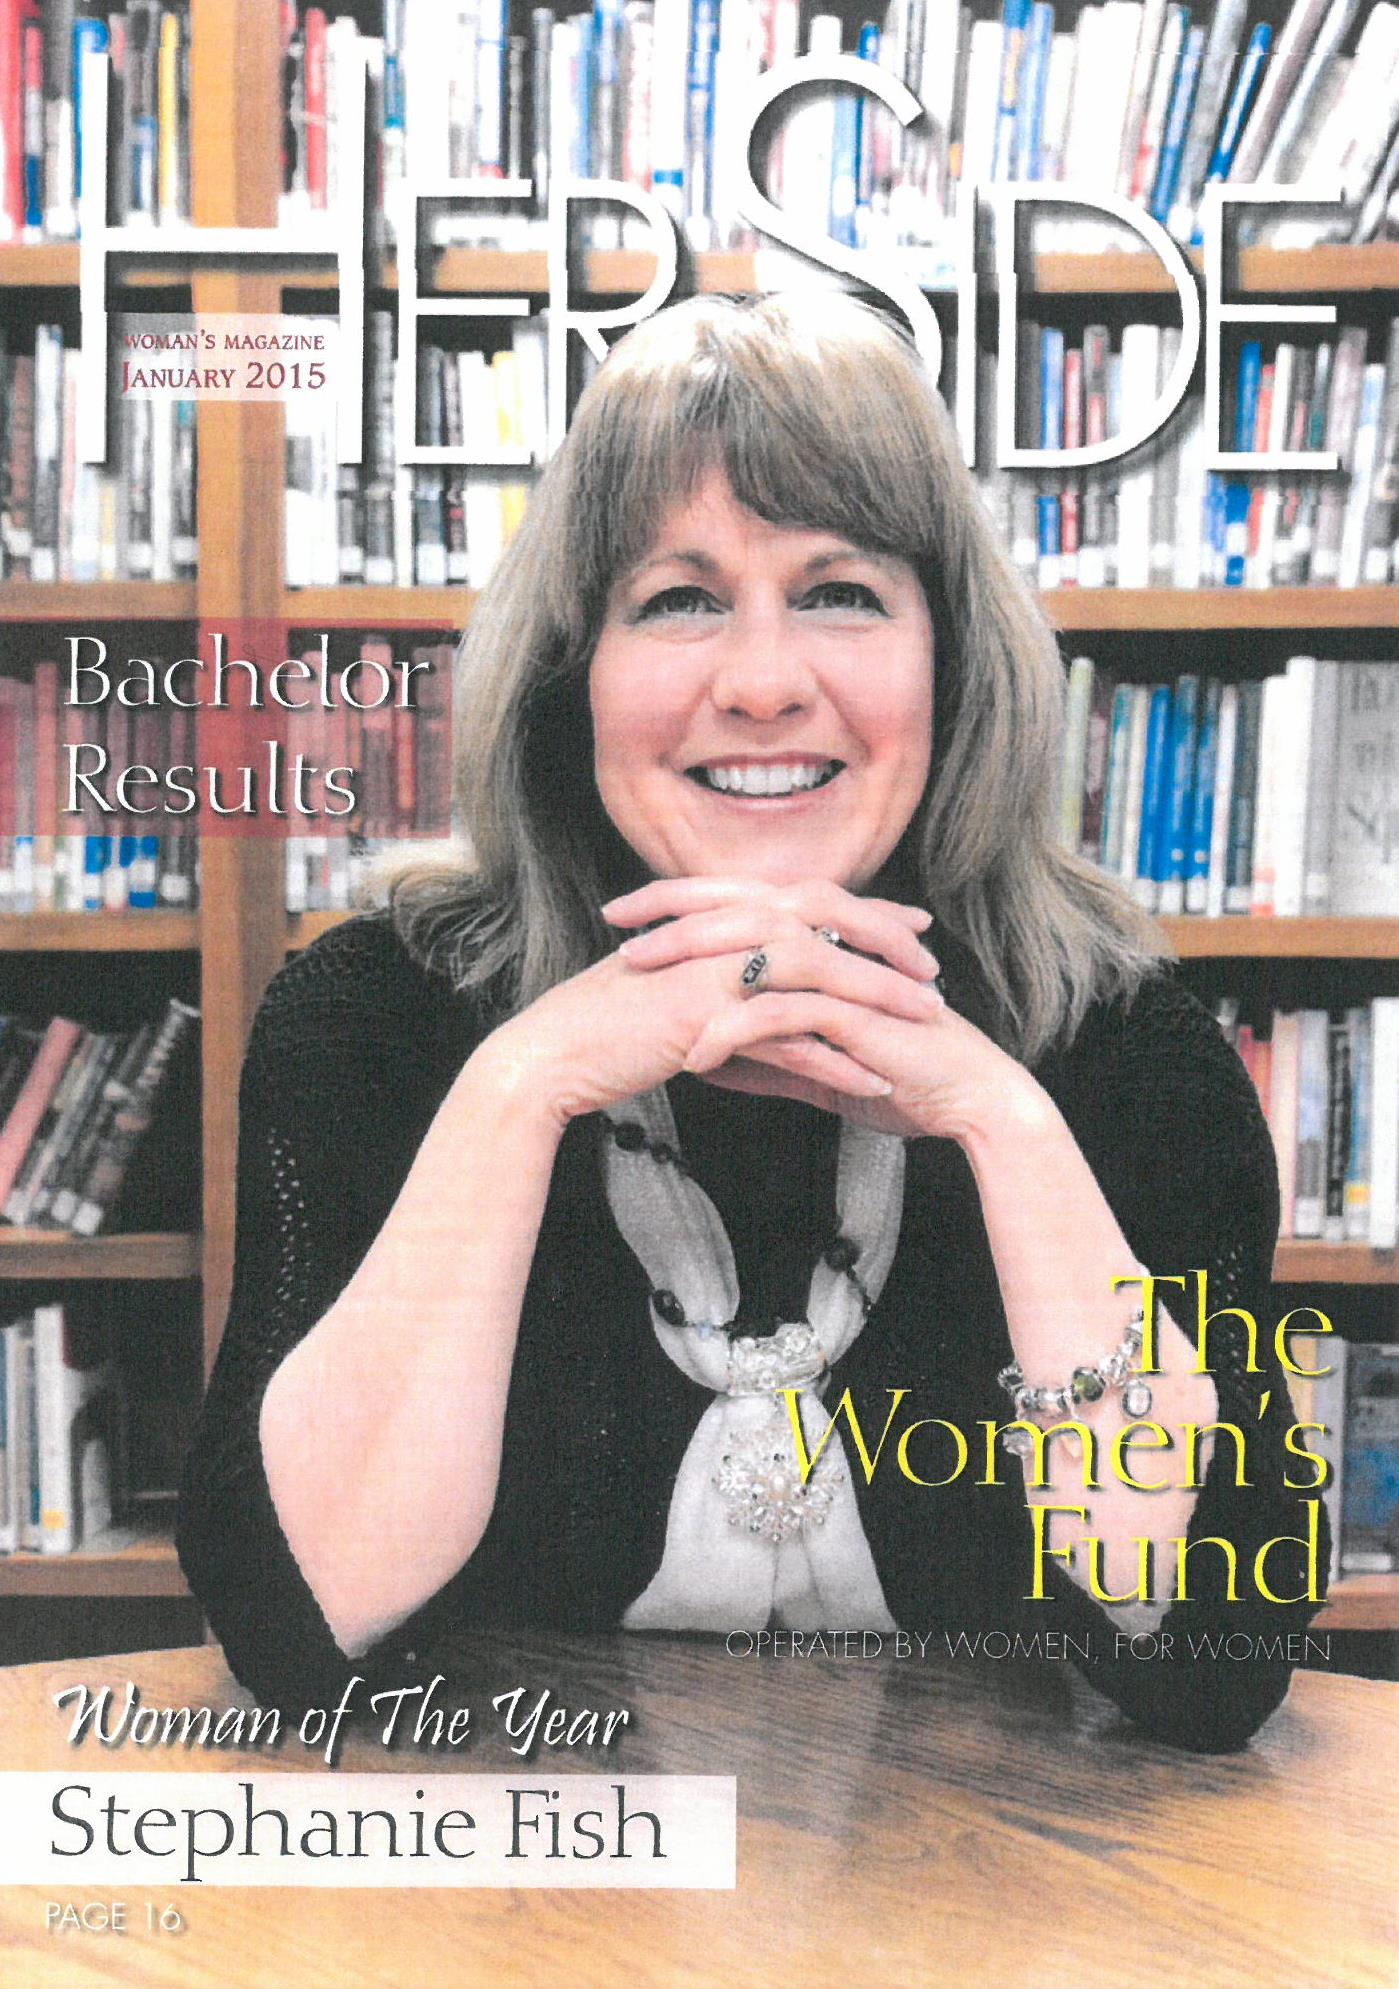 Her Side Woman's Magazine Cover Jan 2015